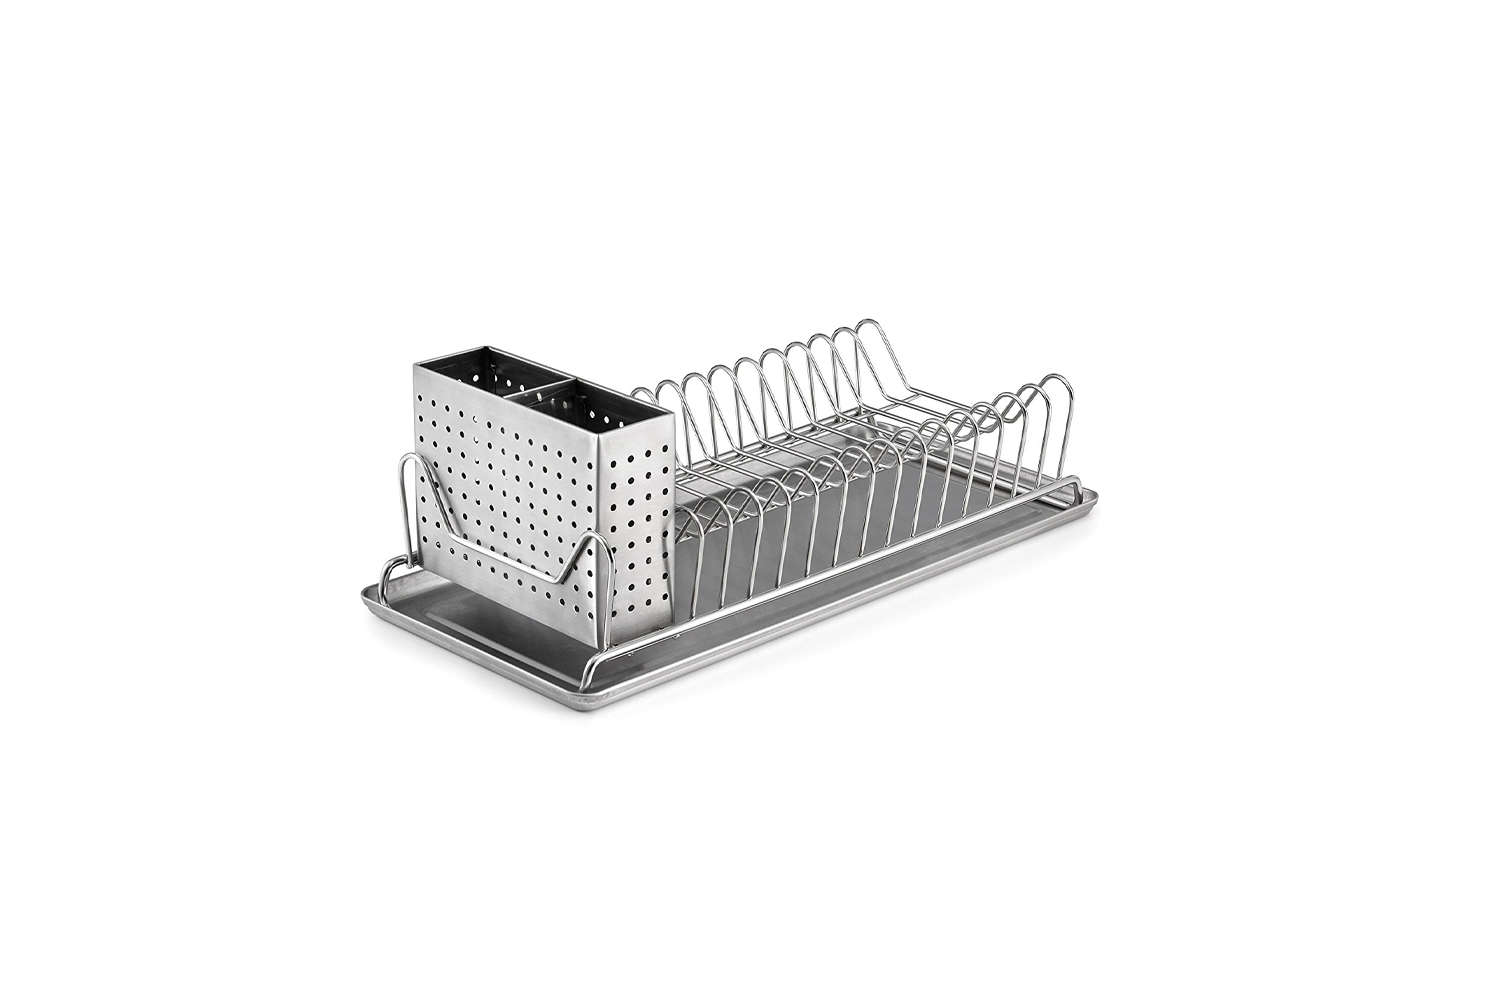 The Polder Compact Stainless-Steel Dish Rack with Utensil Holder is $.99 at Amazon.